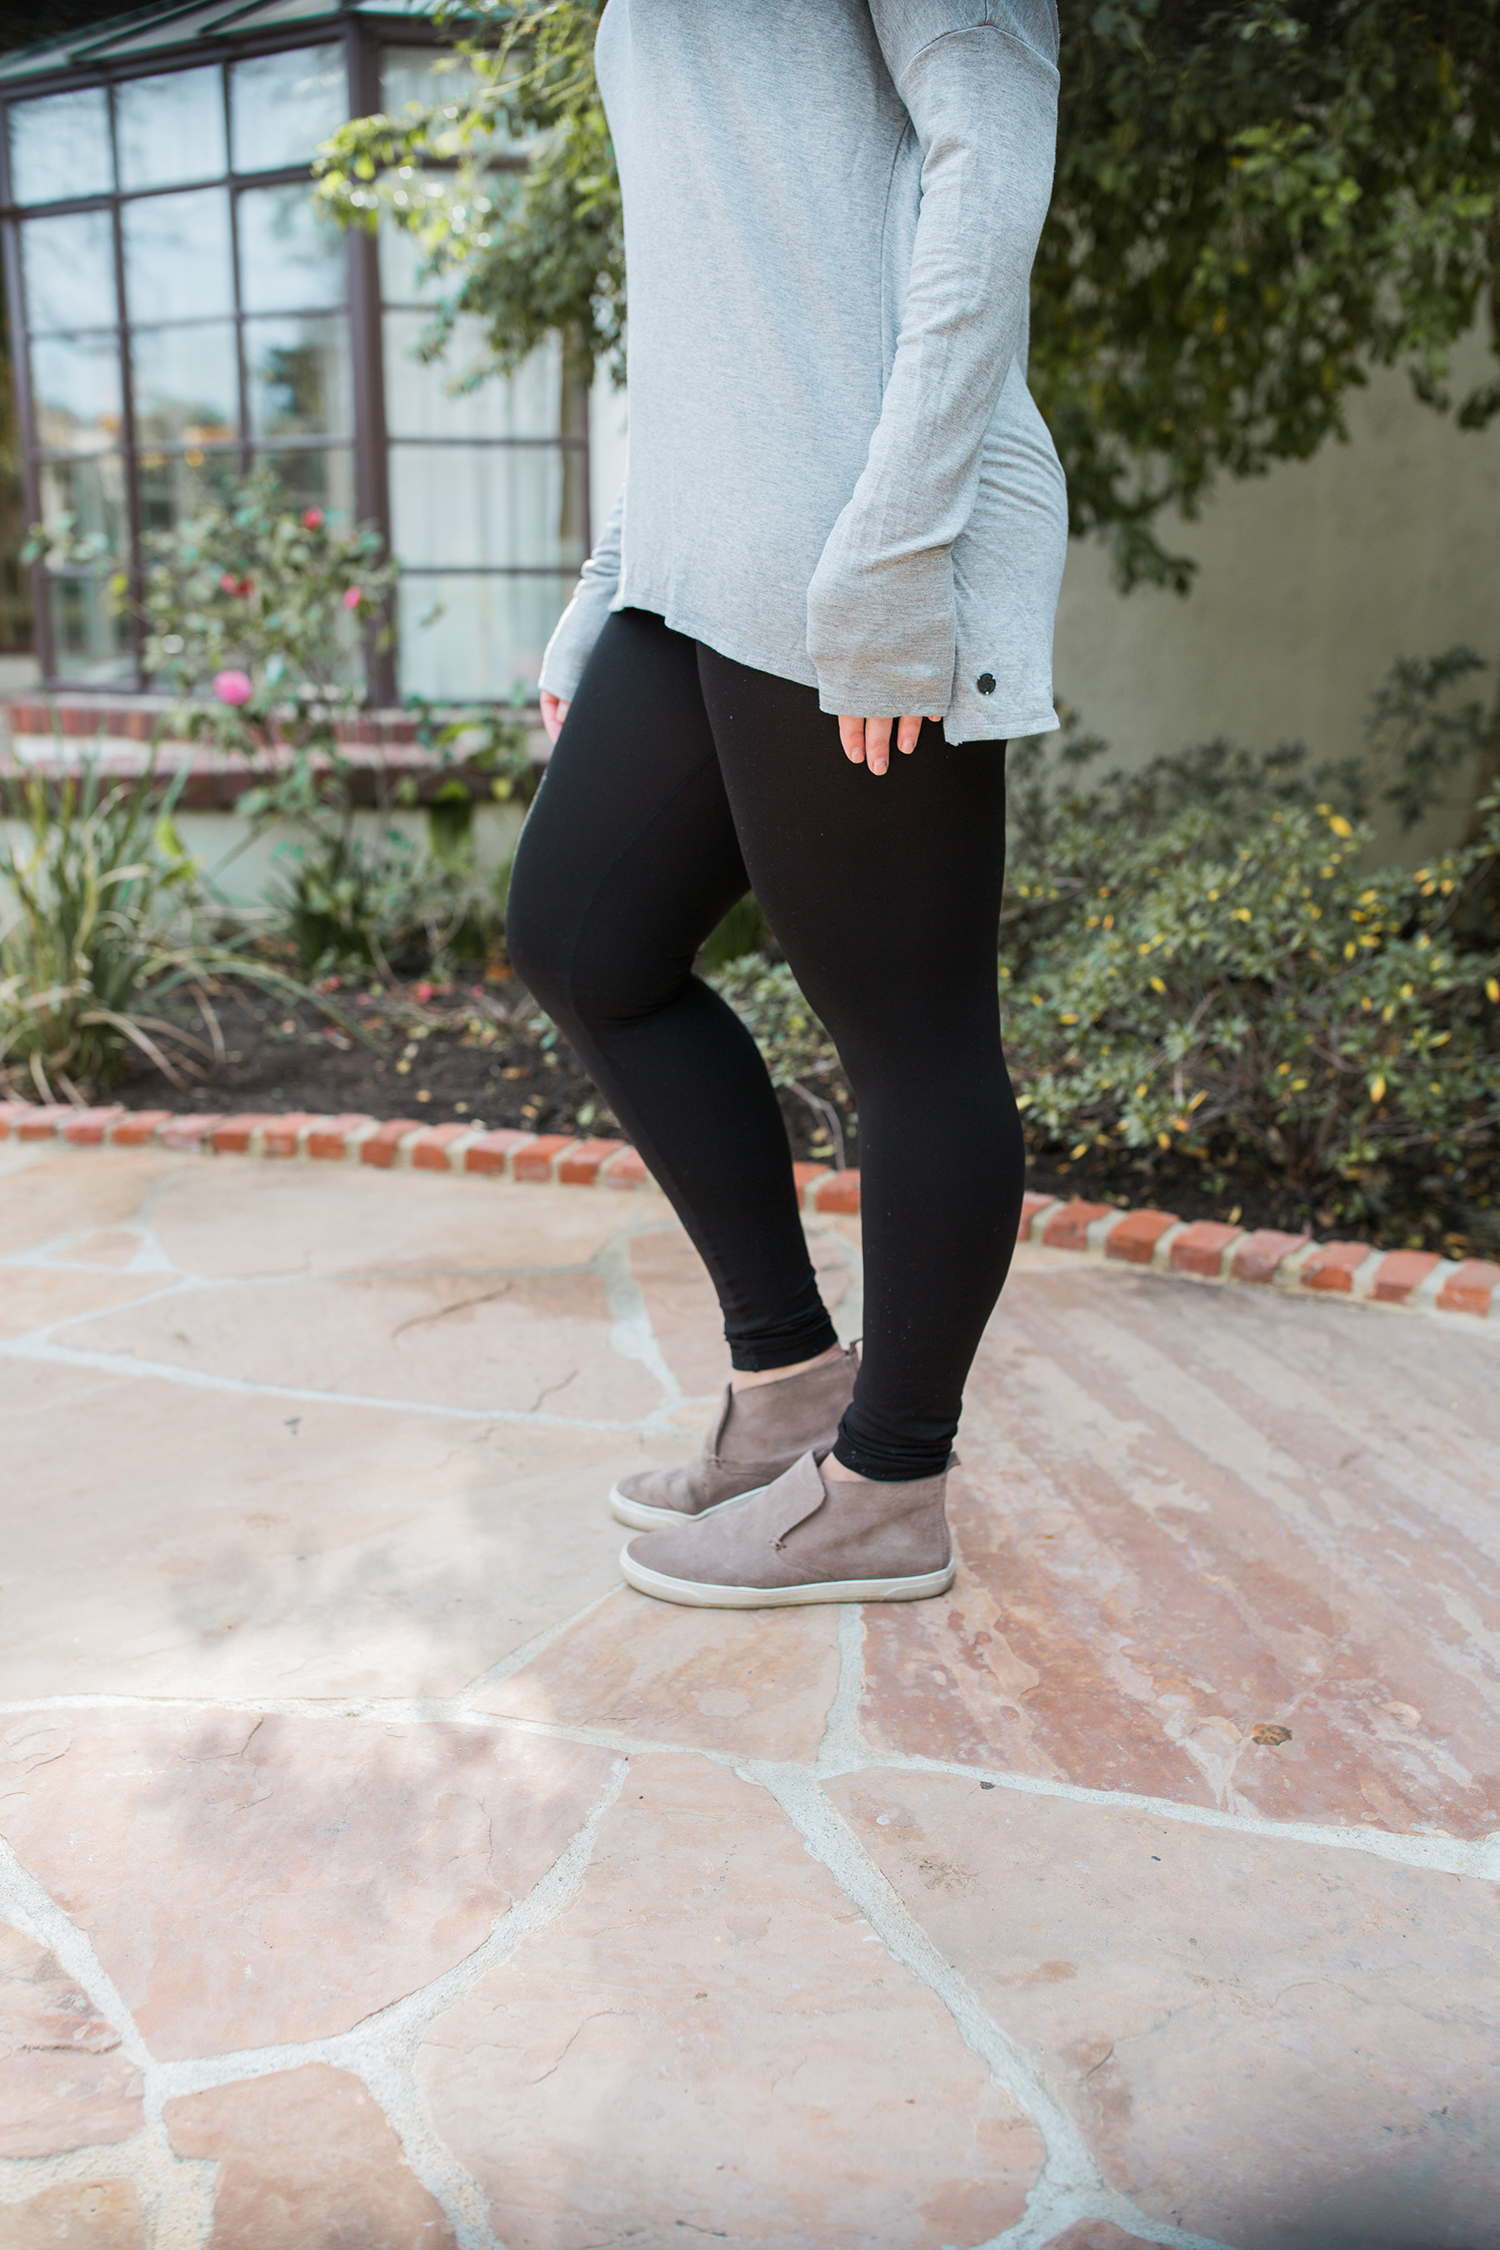 Looking for new years eve outfit ideas? These leggings are perfect for staying in!